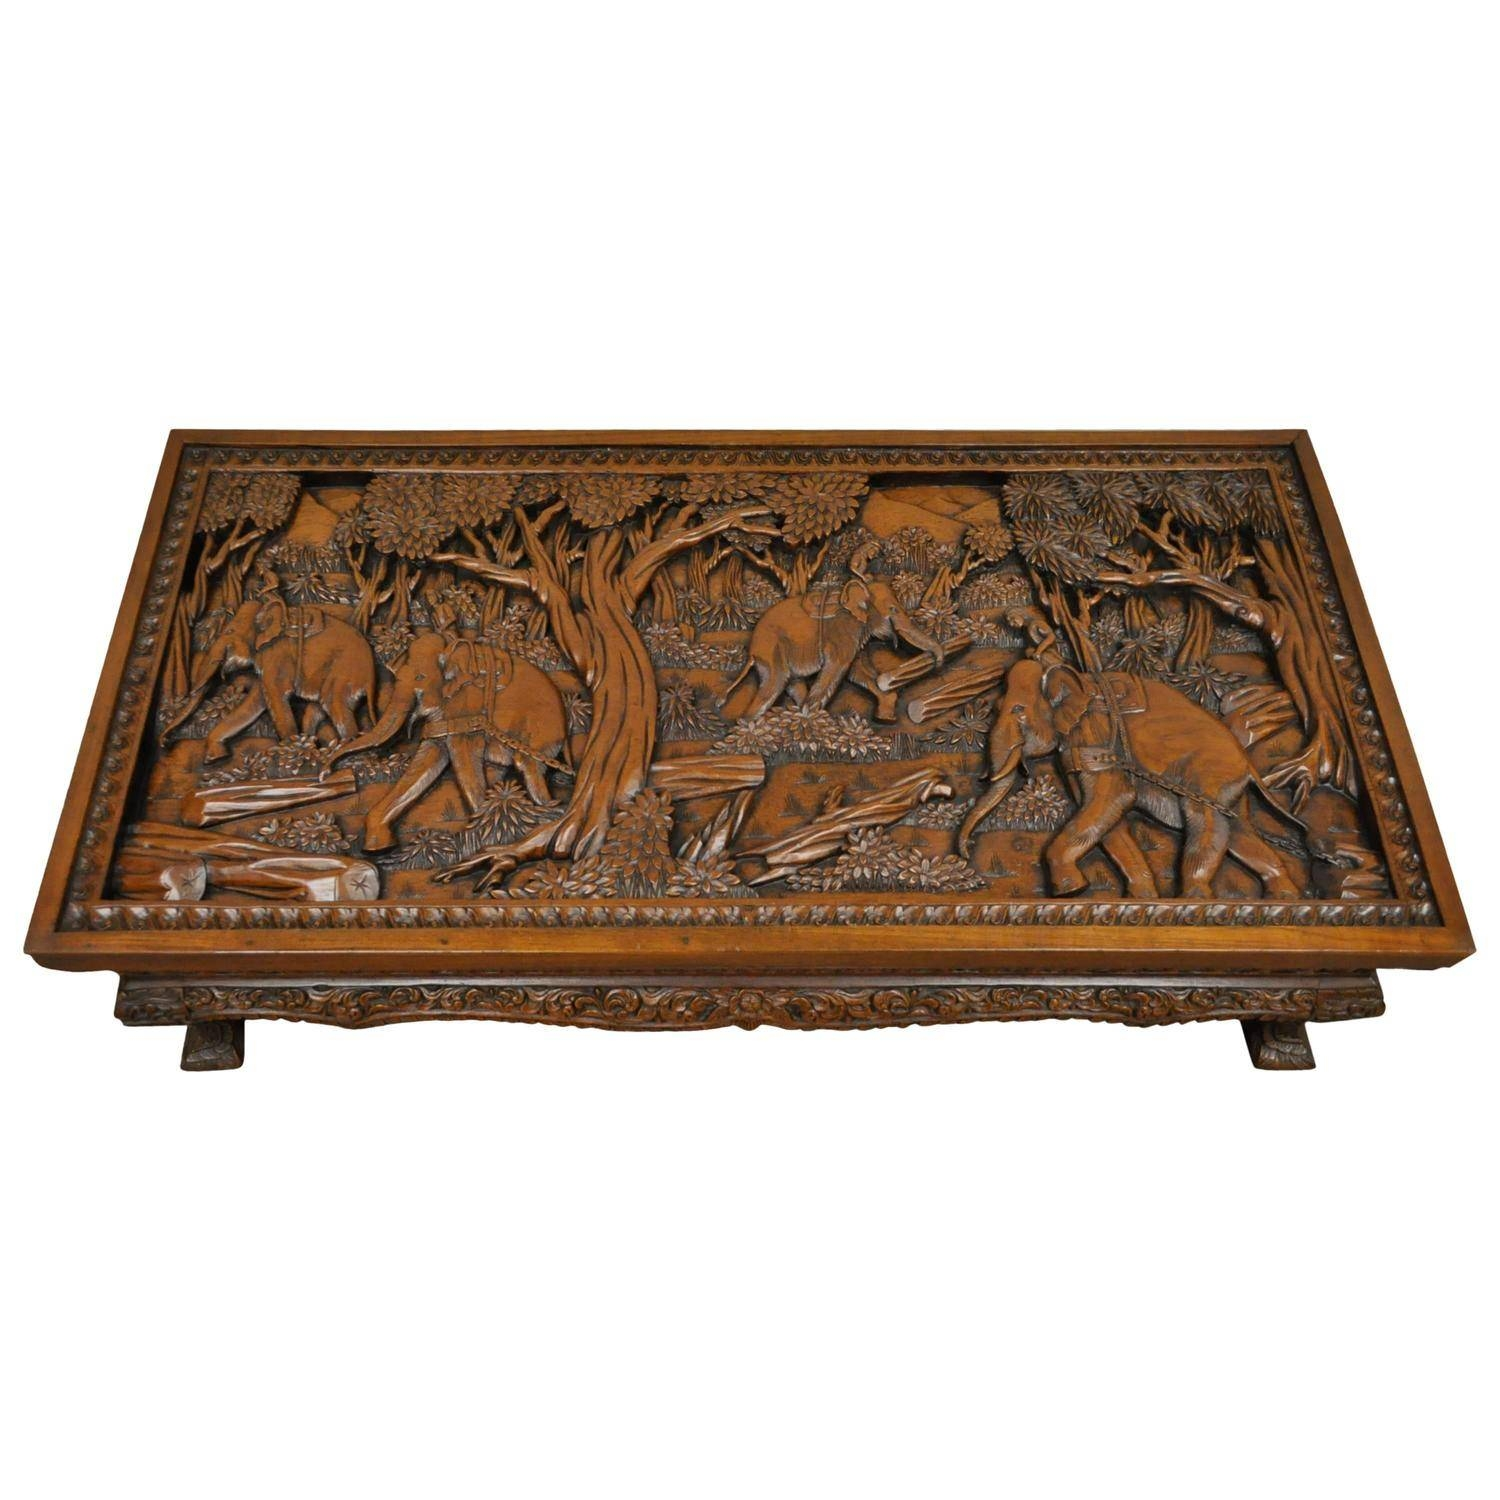 20Th Century Vietnamese Hand-Carved Asian Coffee Low Table With intended for Elephant Coffee Tables With Glass Top (Image 1 of 30)